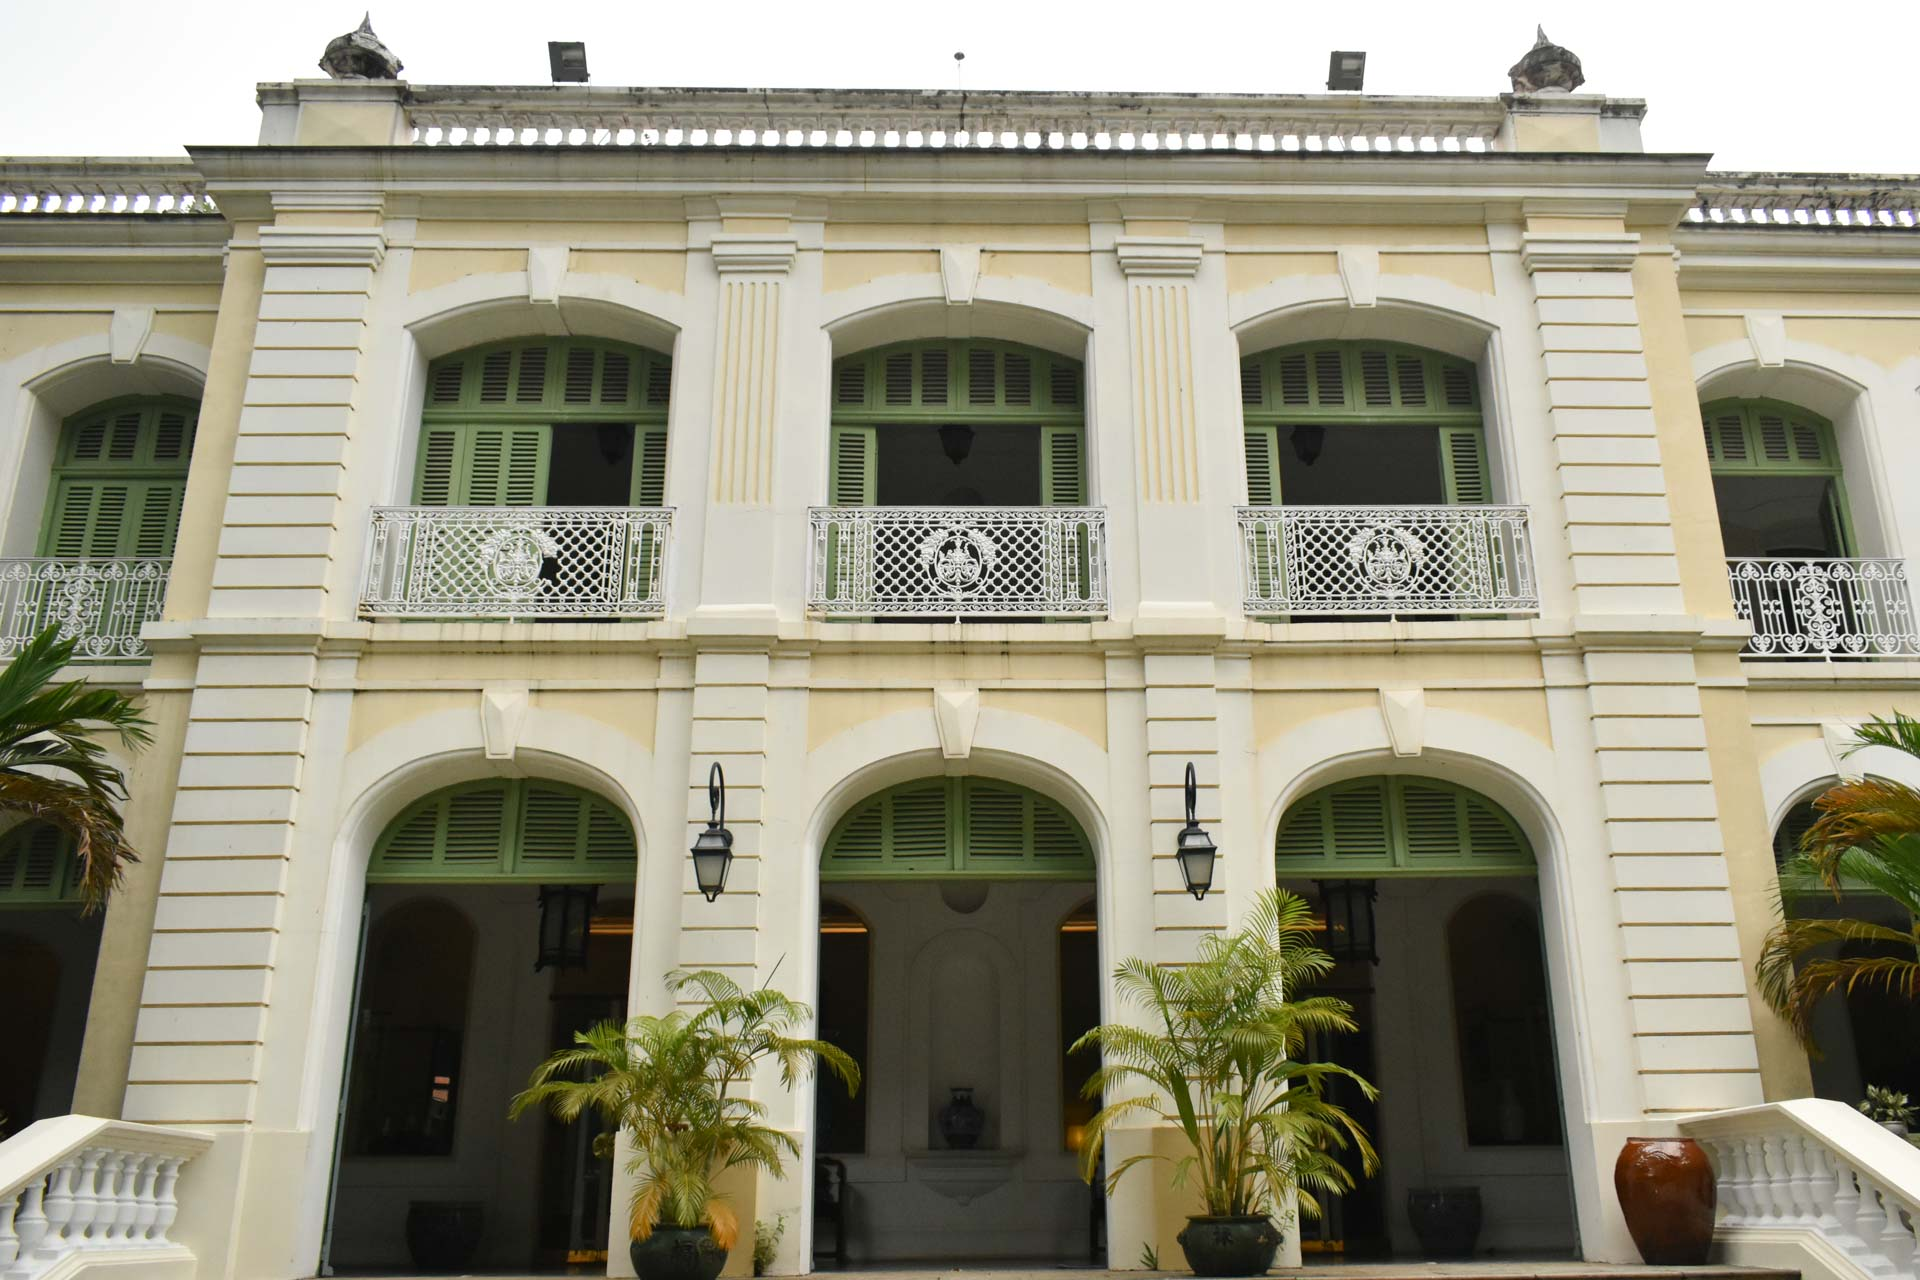 The main building of the Consulate General of France in Ho Chi Minh City. Photo: Tuan Son / Tuoi Tre News